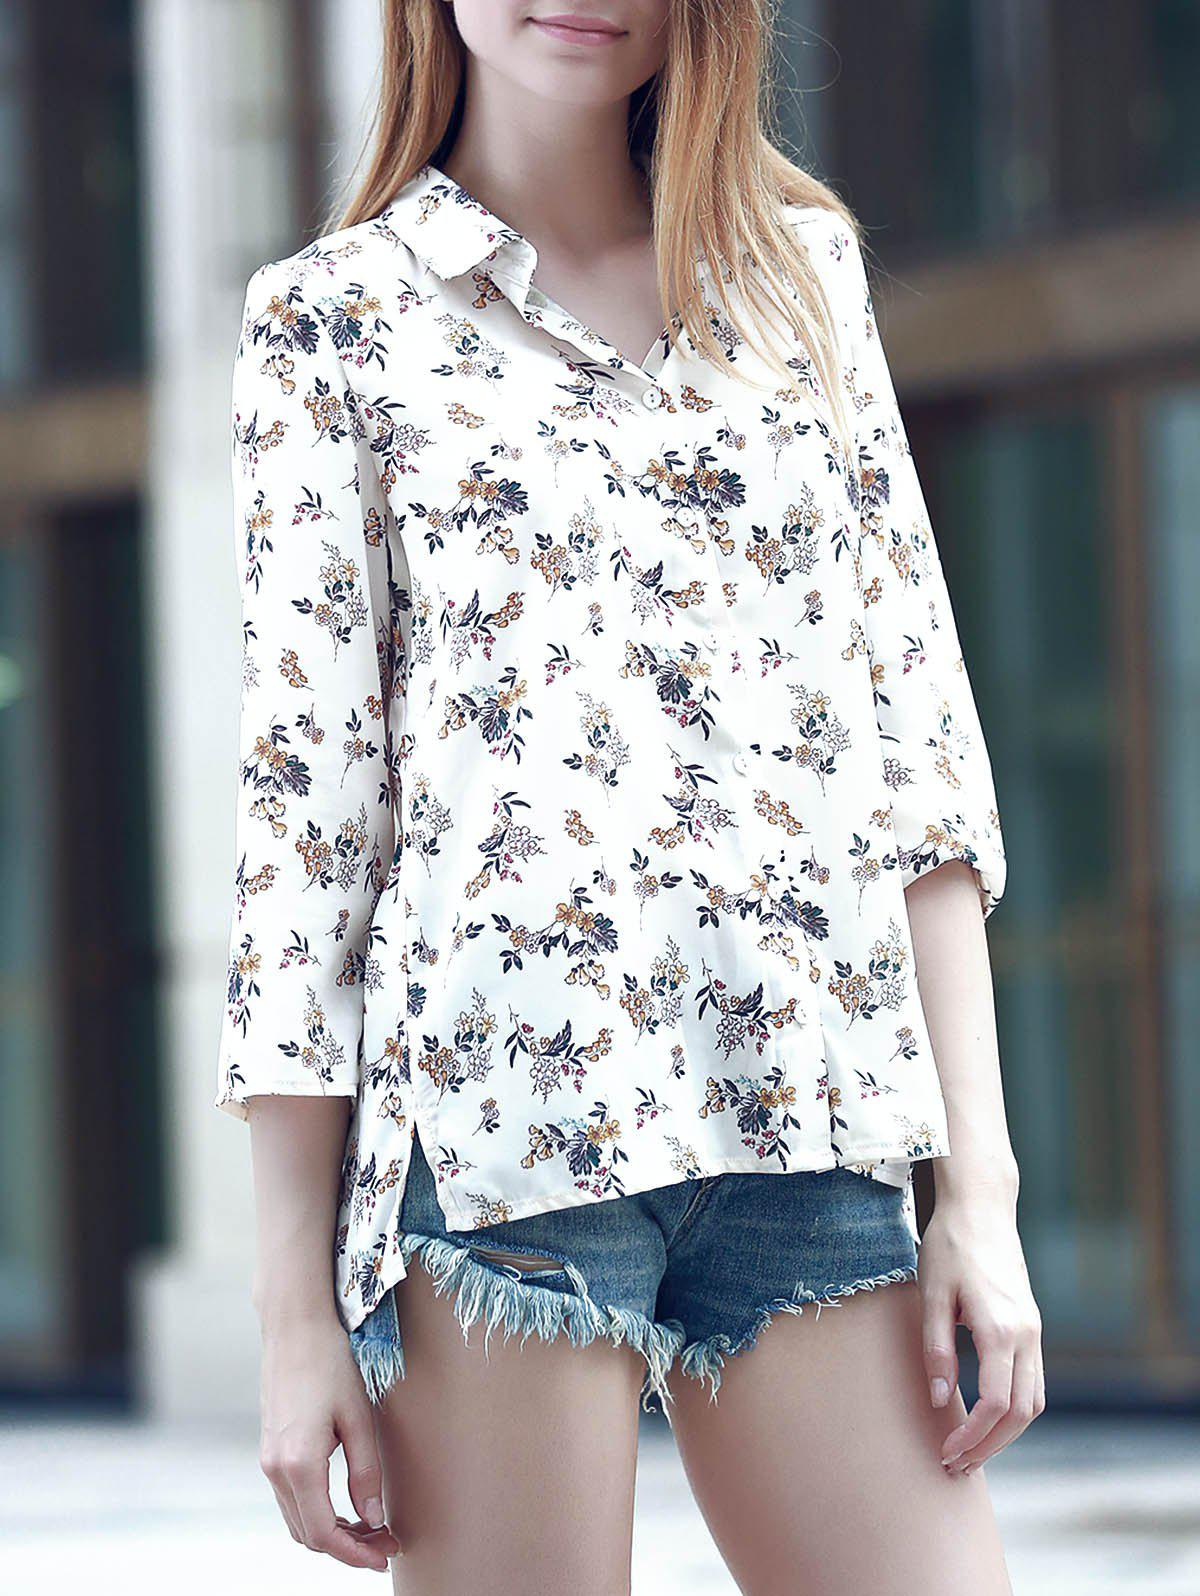 Sweet Women's Turn-Down Collar 3/4 Sleeve Flower Print Shirt - BEIGE 2XL